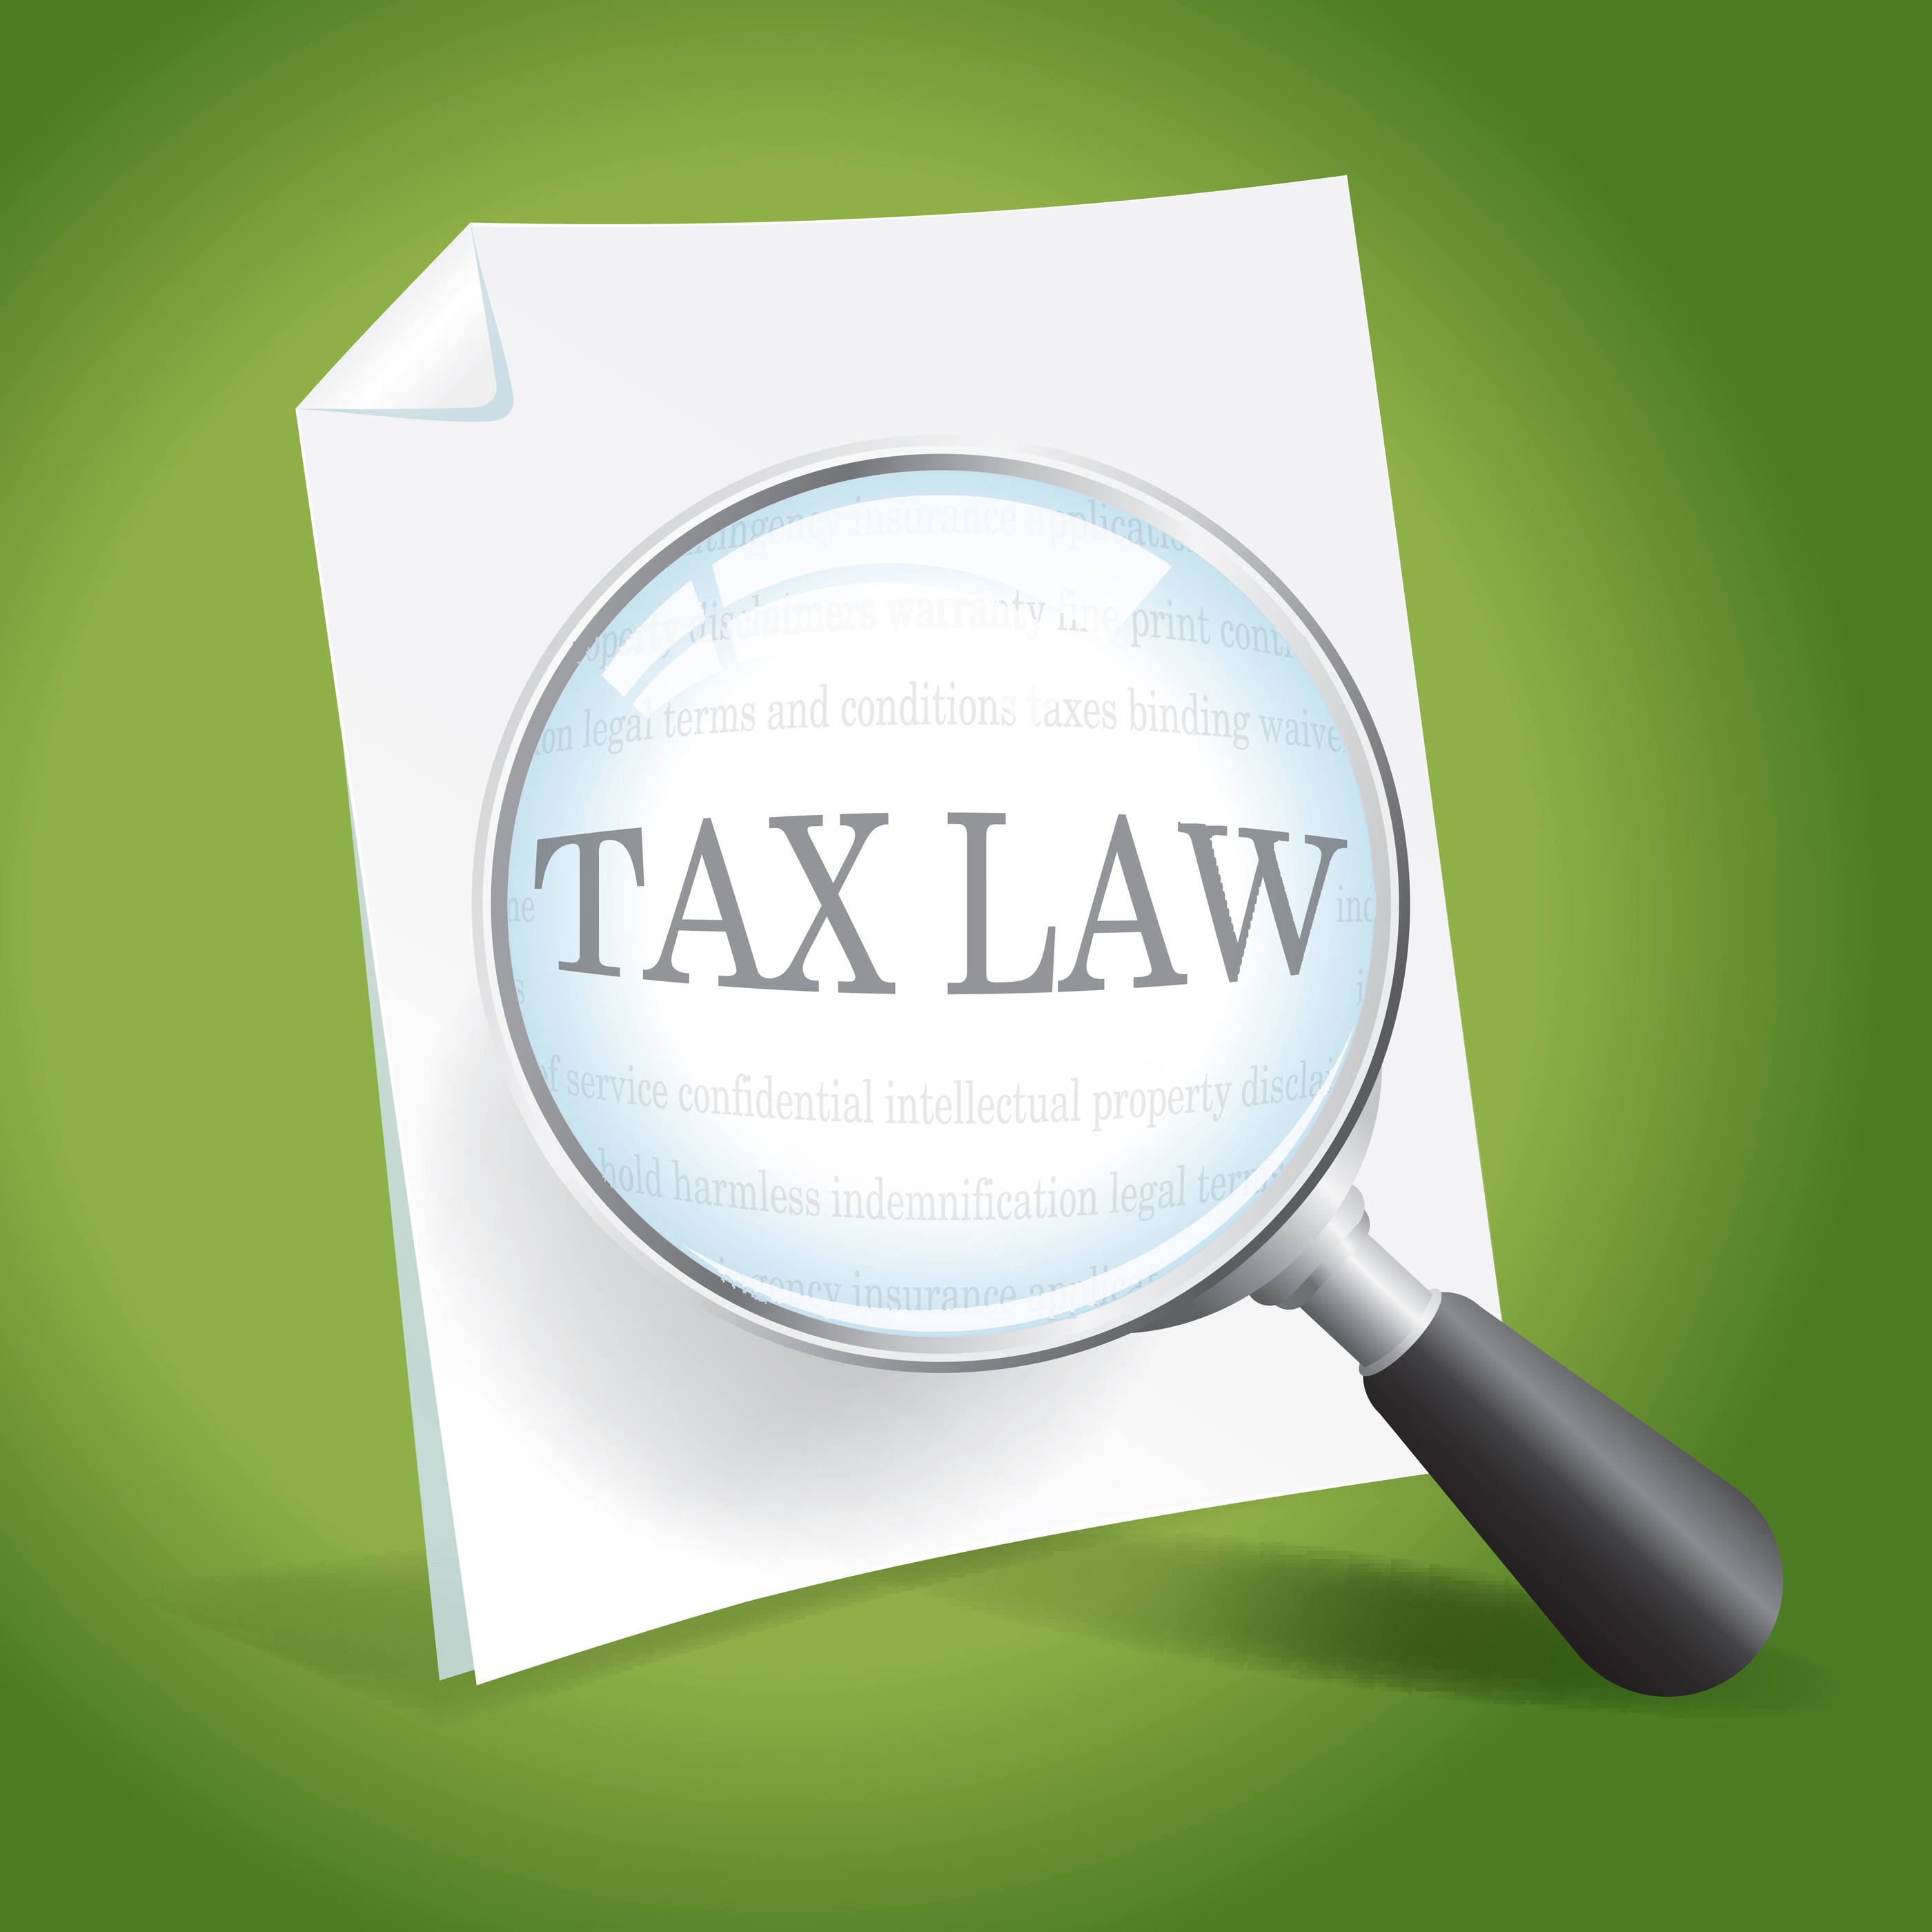 taxation law Taxation refers to the act of a taxing authority actually levying tax taxation as a term applies to all types of taxes, from income to gift to estate taxes it is usually referred to as an act any revenue collected is usually called taxes.